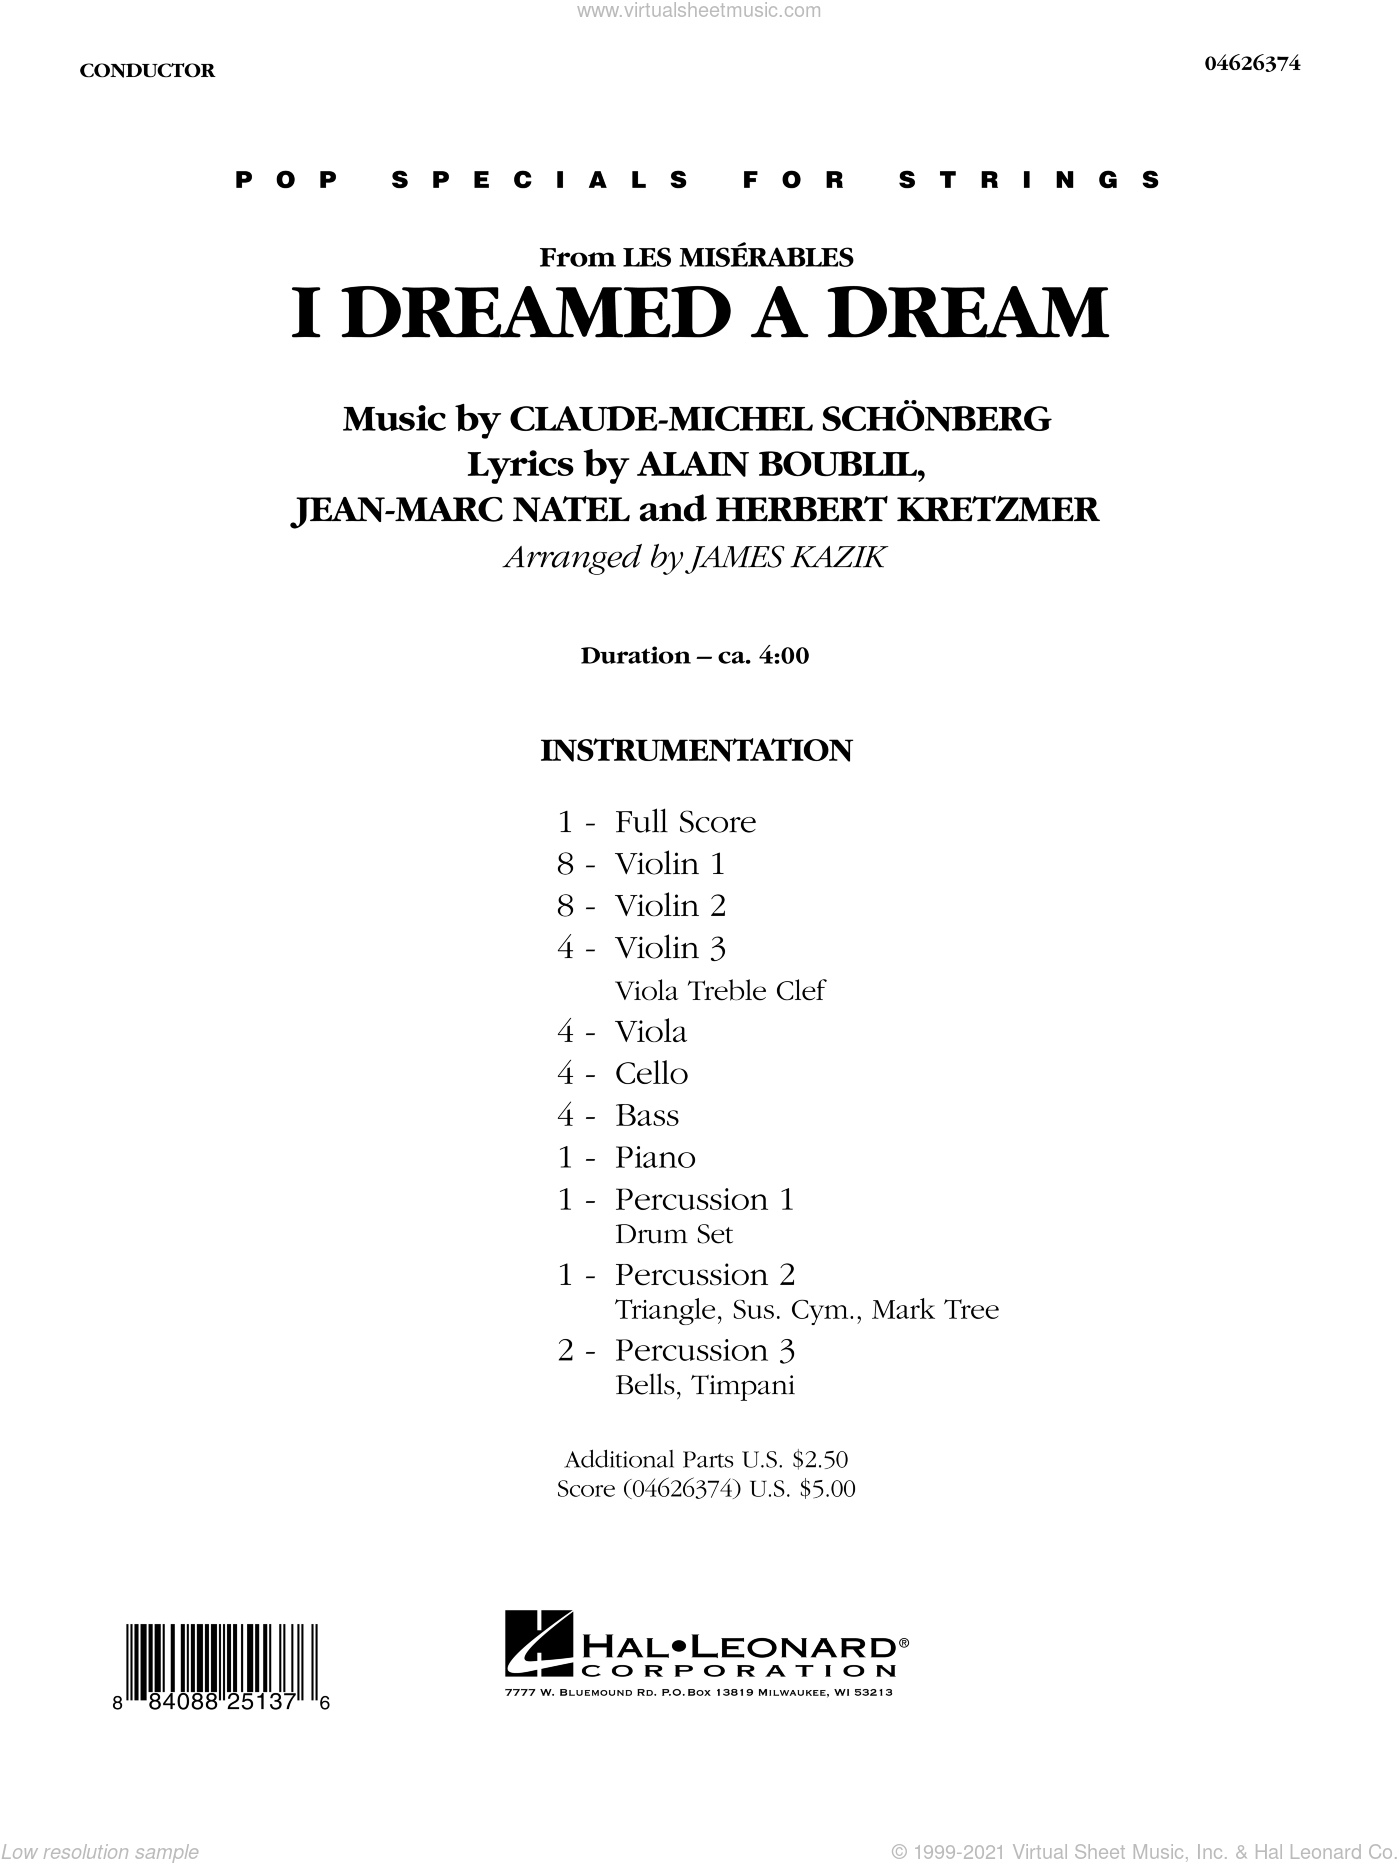 I Dreamed a Dream (from